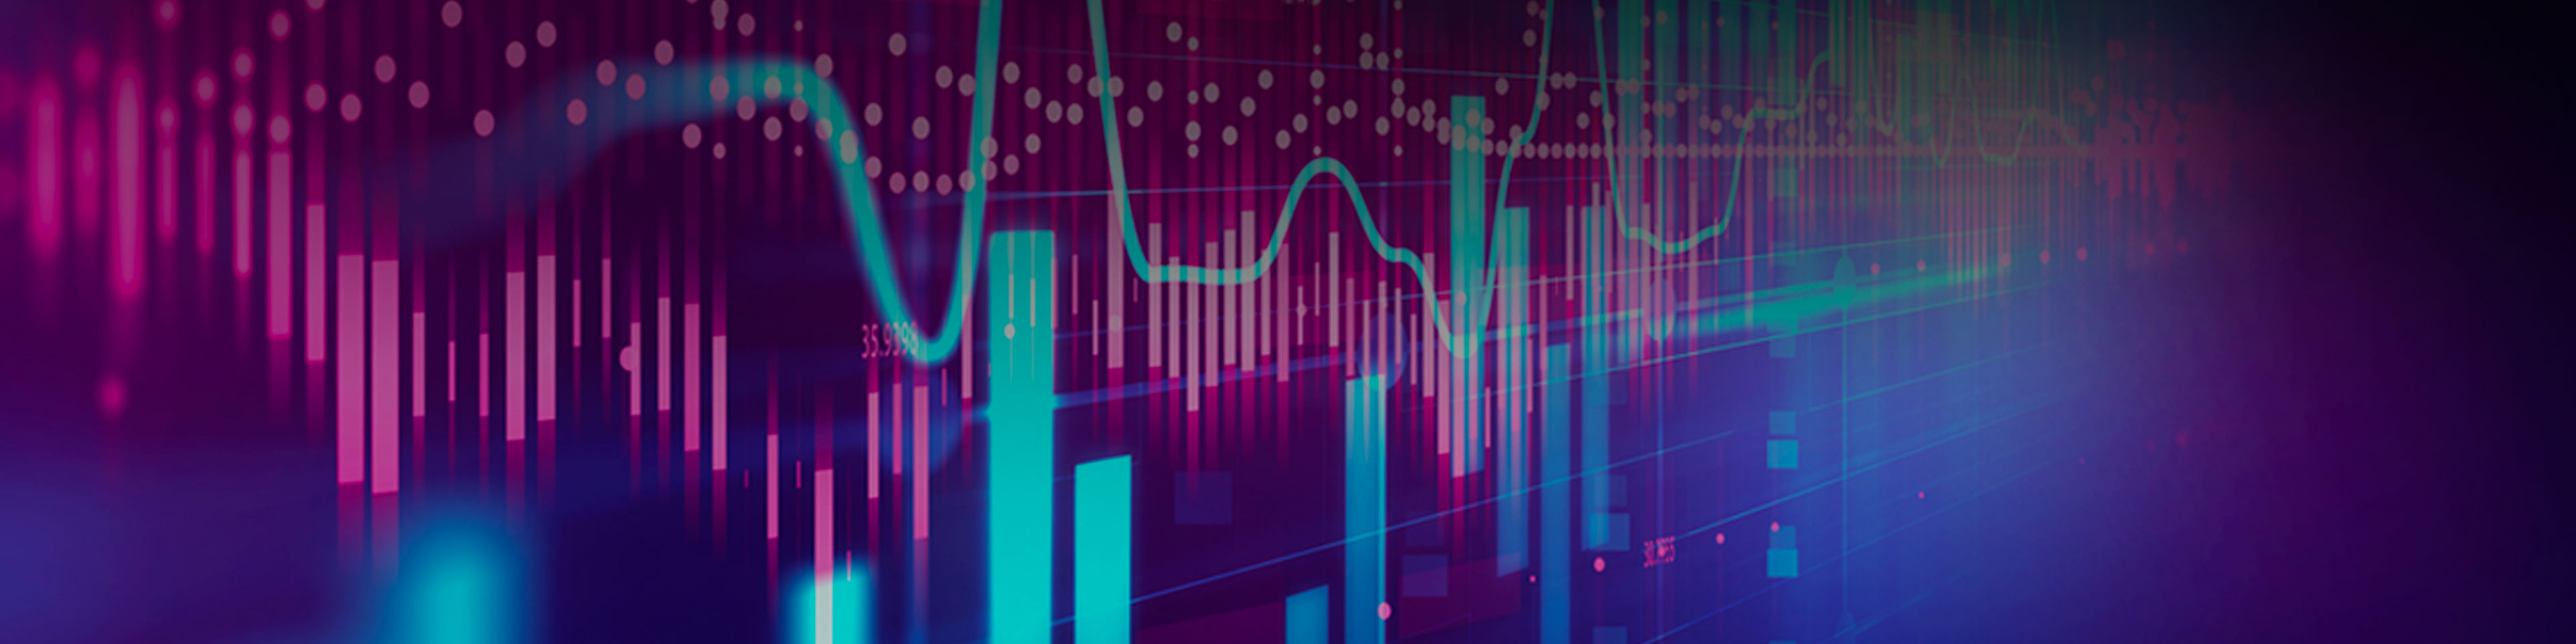 5 steps to succeed with a good data-driven strategy that leverages Predictive Analytics